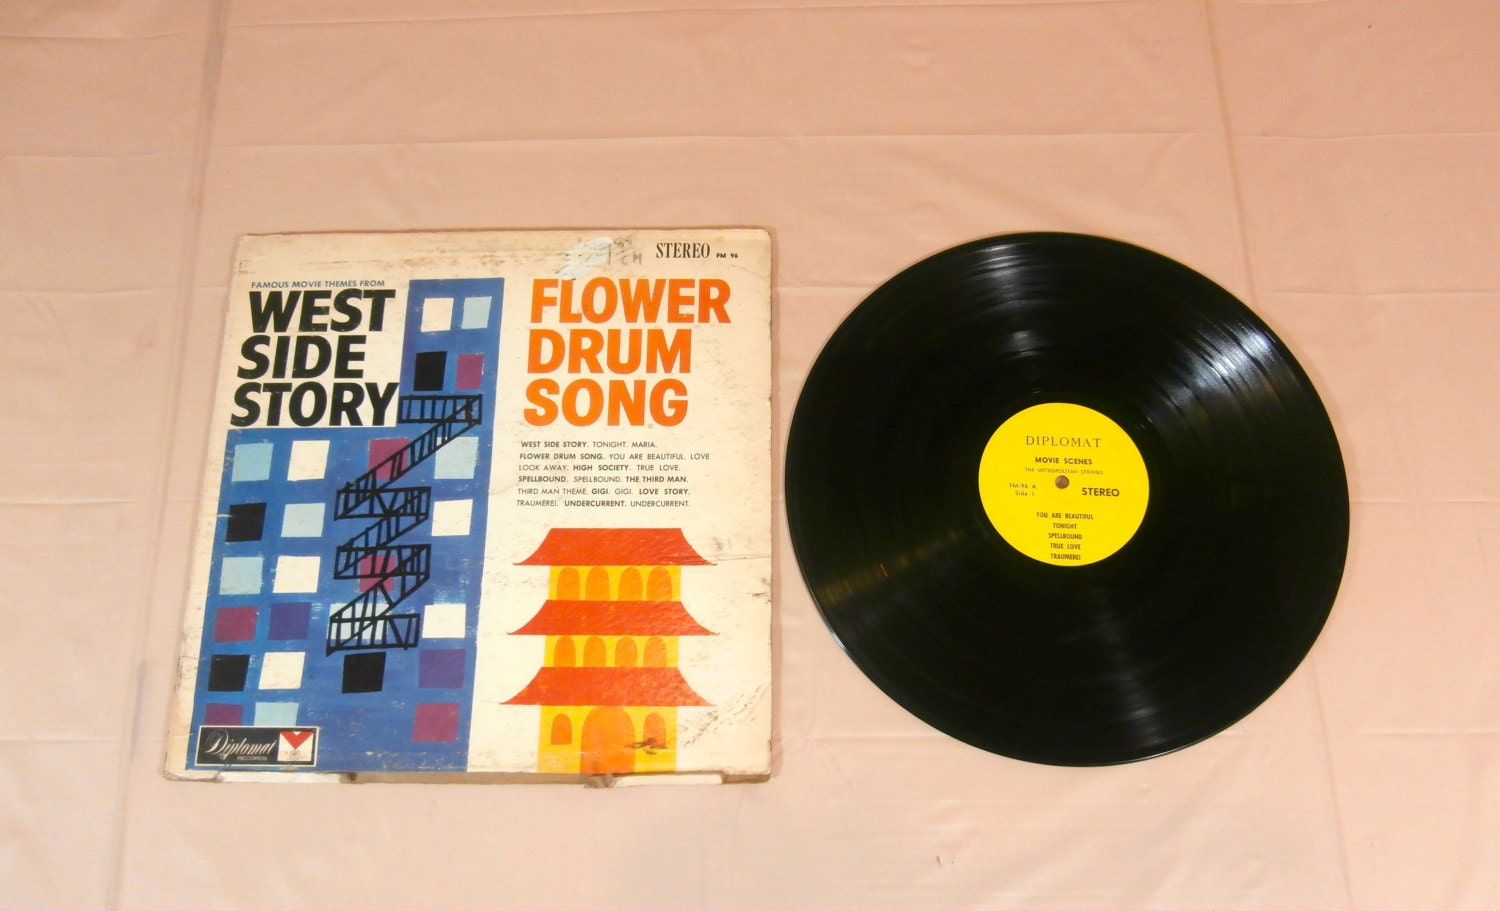 West Side Story Flower Drum Song Music LP Record ALBUM FM